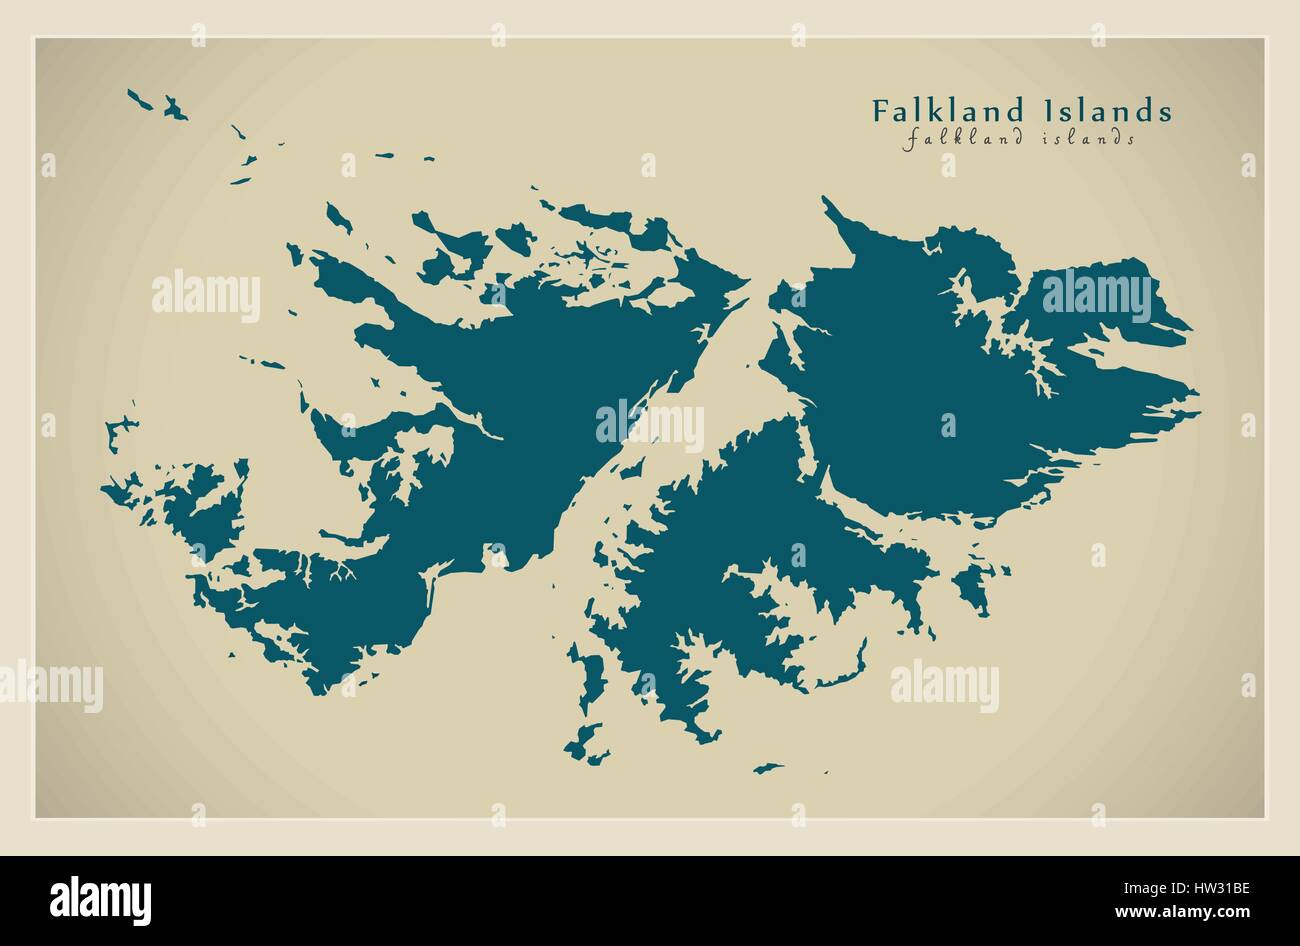 Page 2 Falkland Islands Map High Resolution Stock Photography And Images Alamy